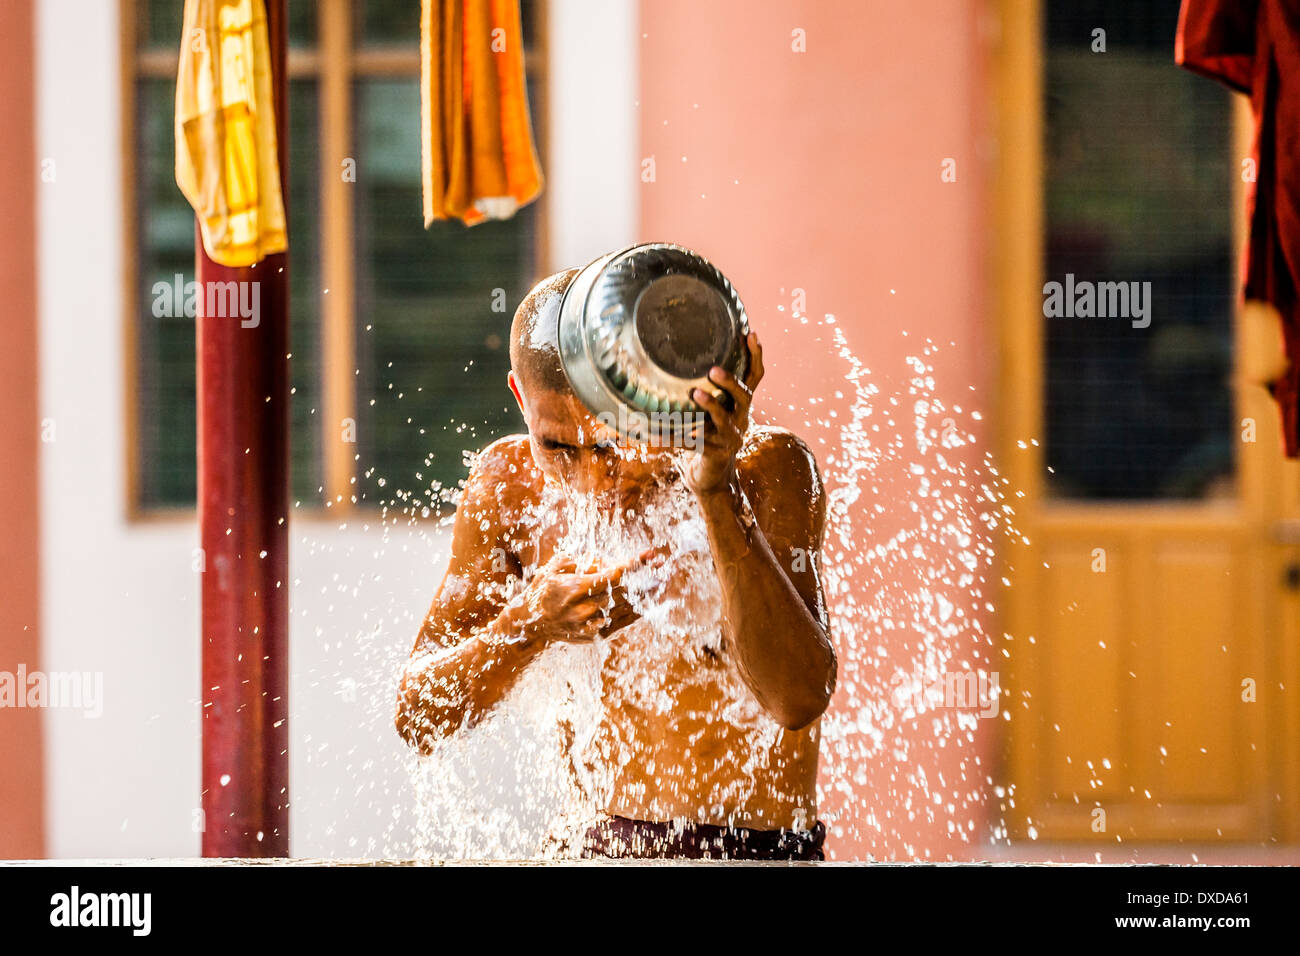 A monk uses a metal bowl to shower during a hot afternoon in Mandalay, Myanmar (Burma) in Southeast Asia. - Stock Image